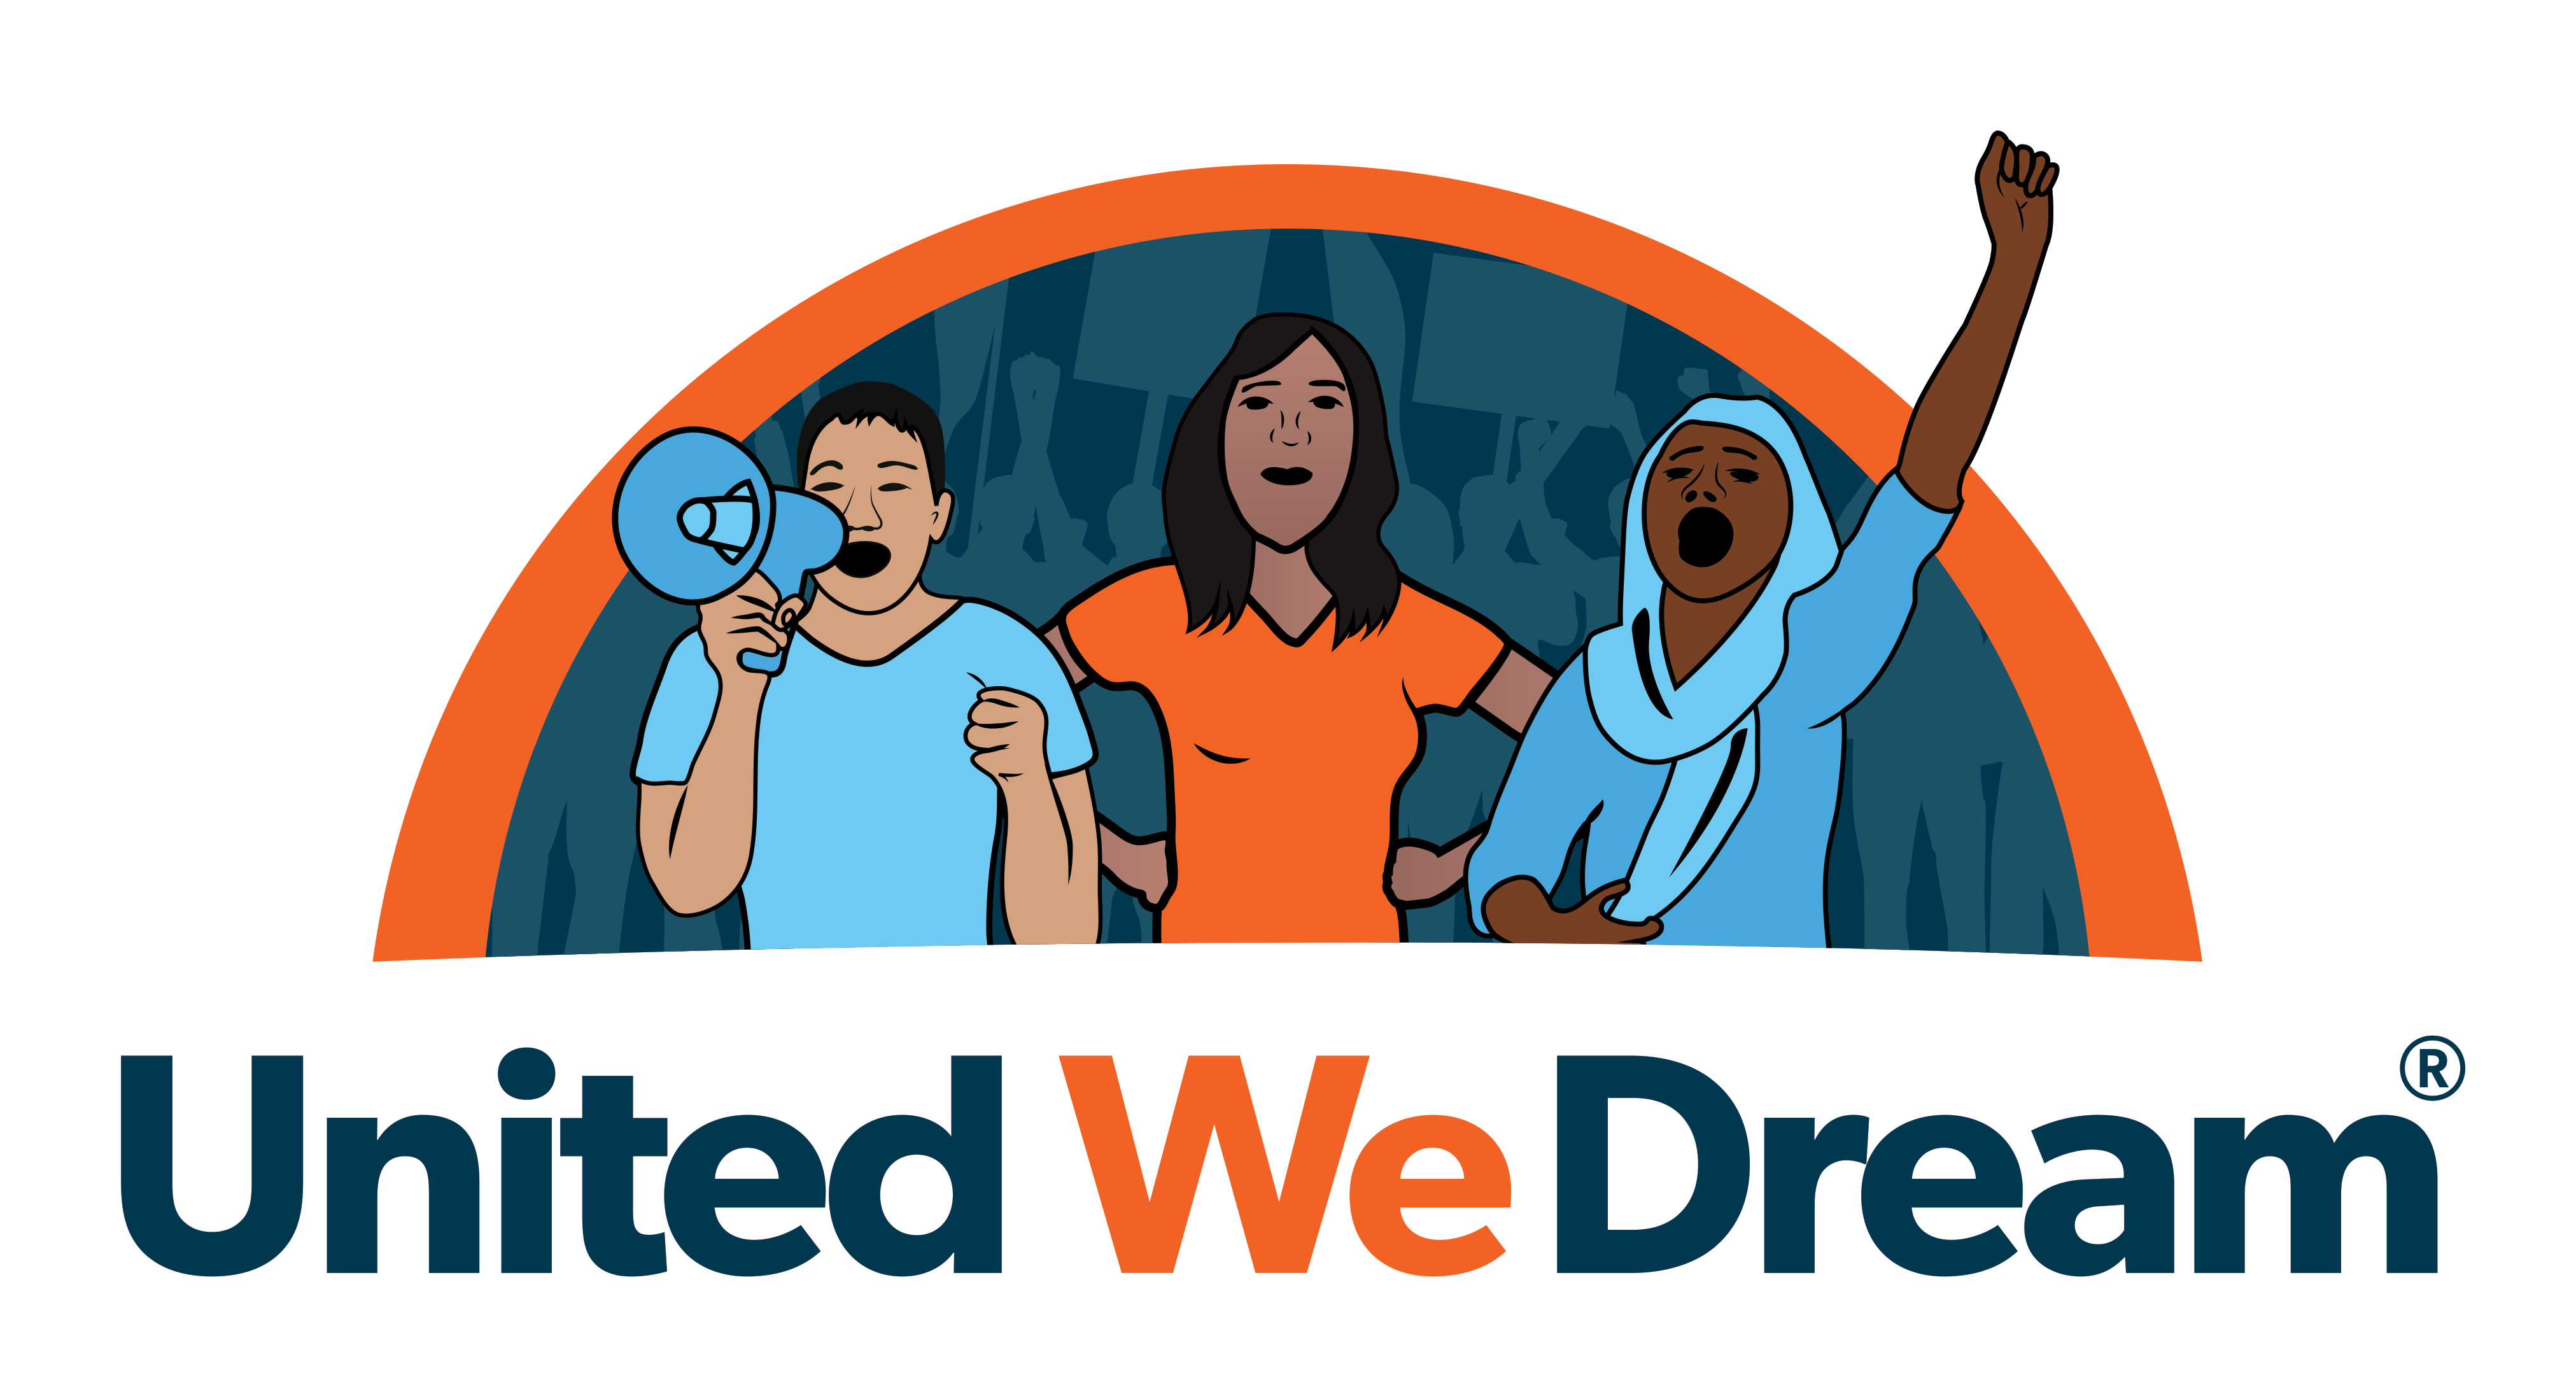 Dreaming clipart day dreaming. United we dream the